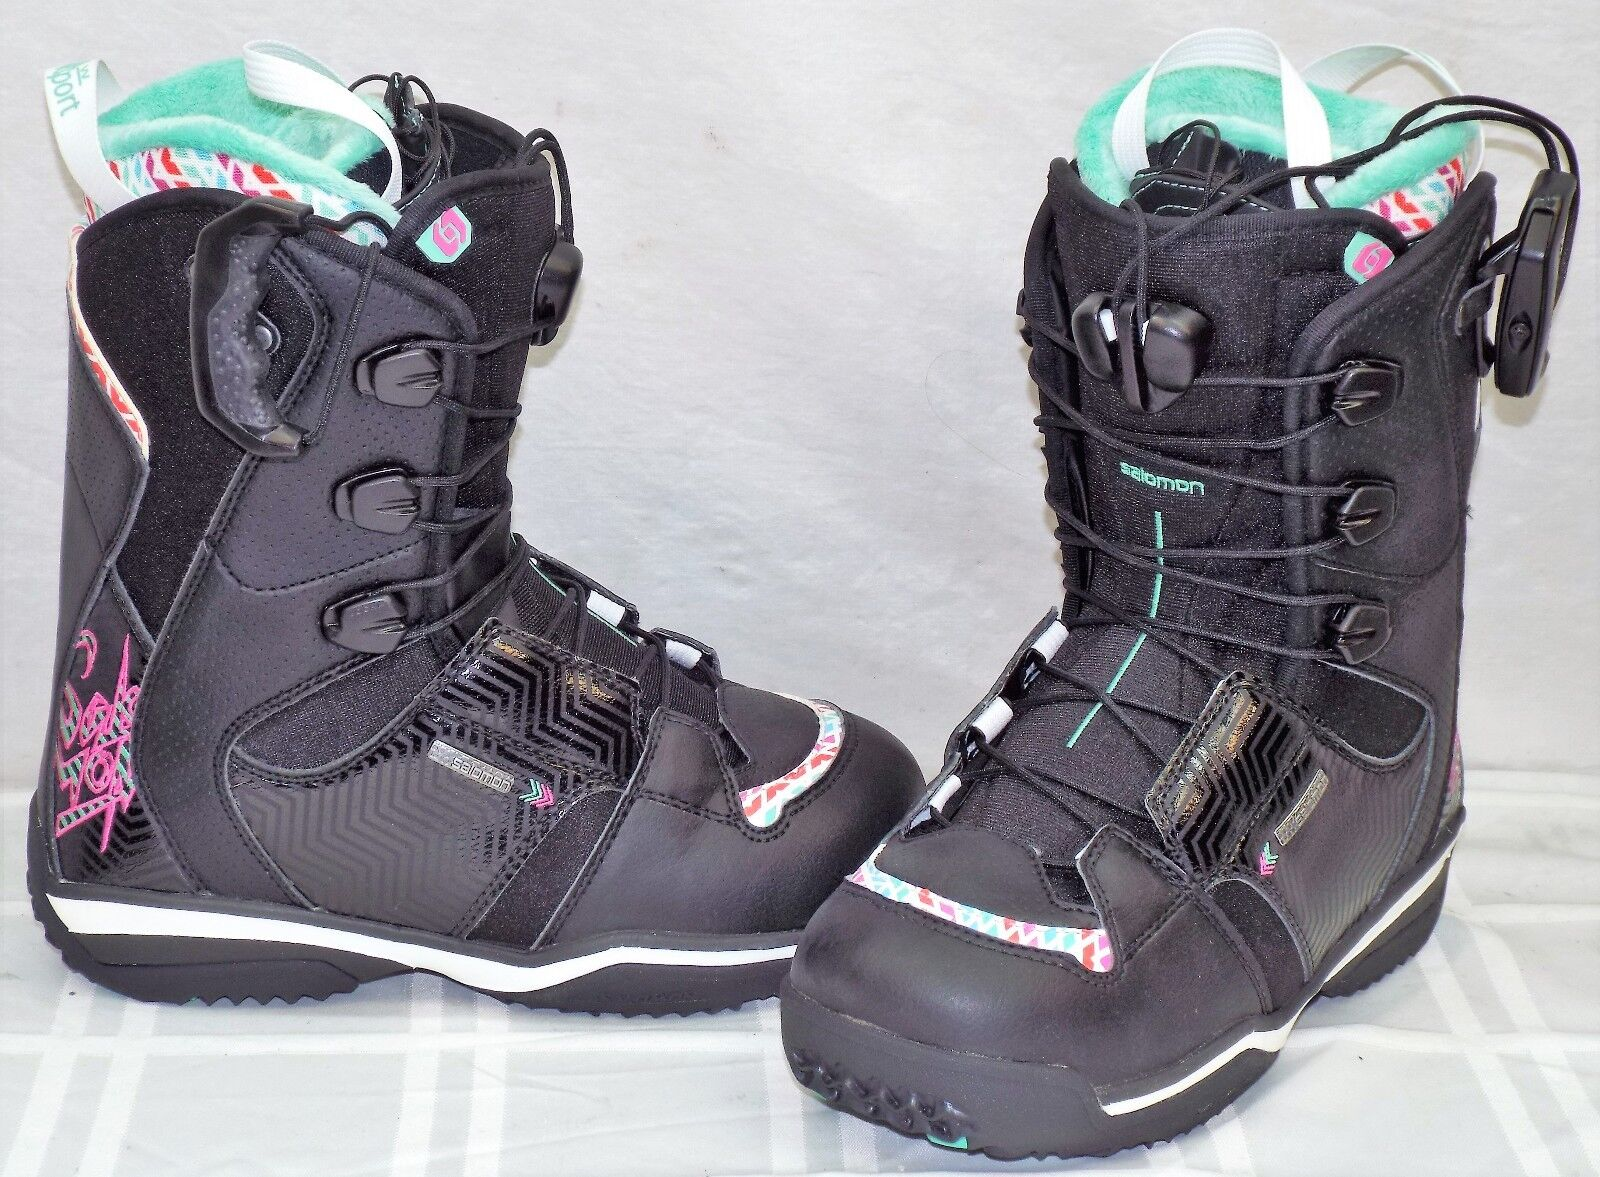 ivy new women s snowboard boots size